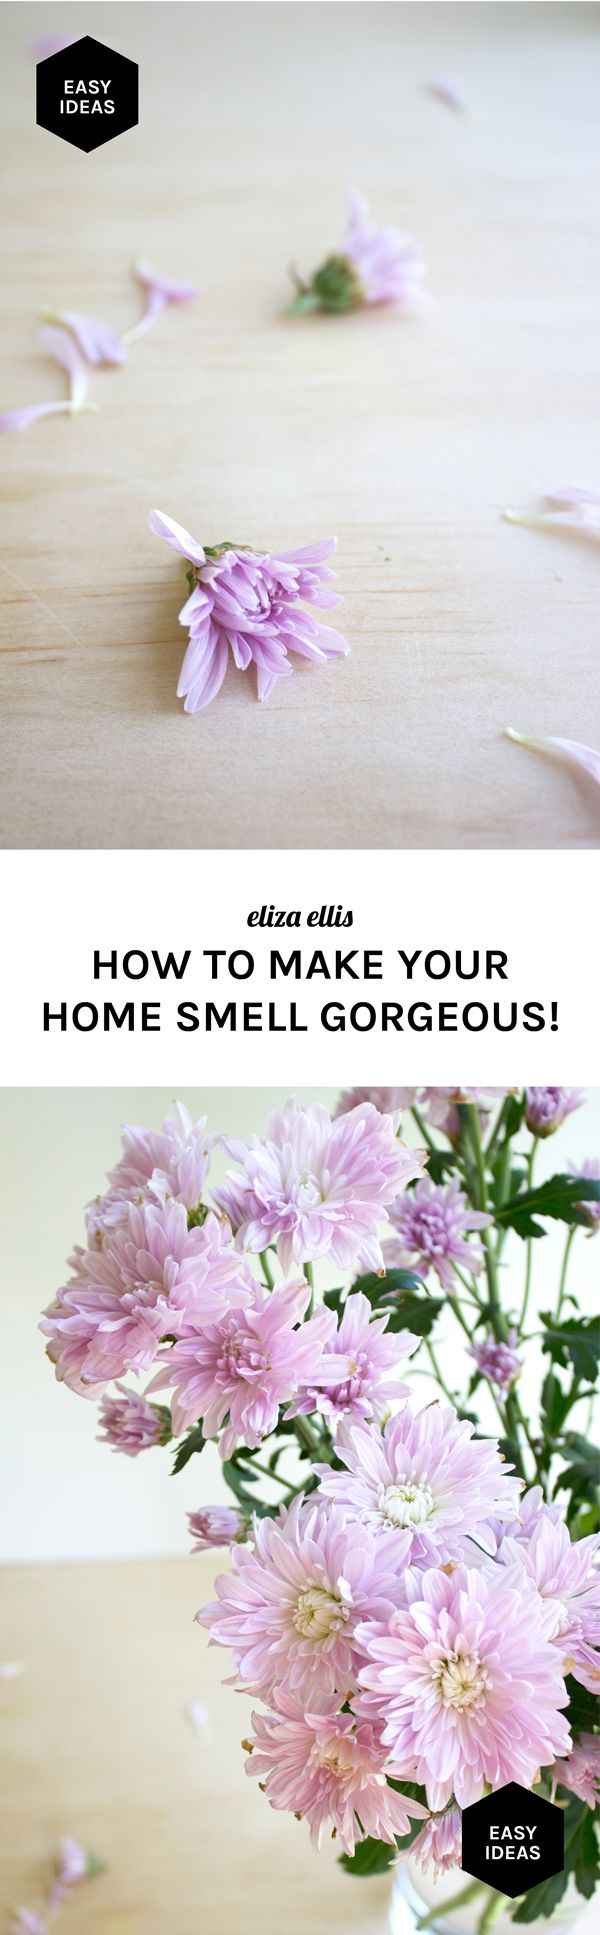 One of my most popular posts ever, and always helpful when you're expecting guests - How to Make Your Home Smell Gorgeous! Loads of tips, tricks and handy hints.